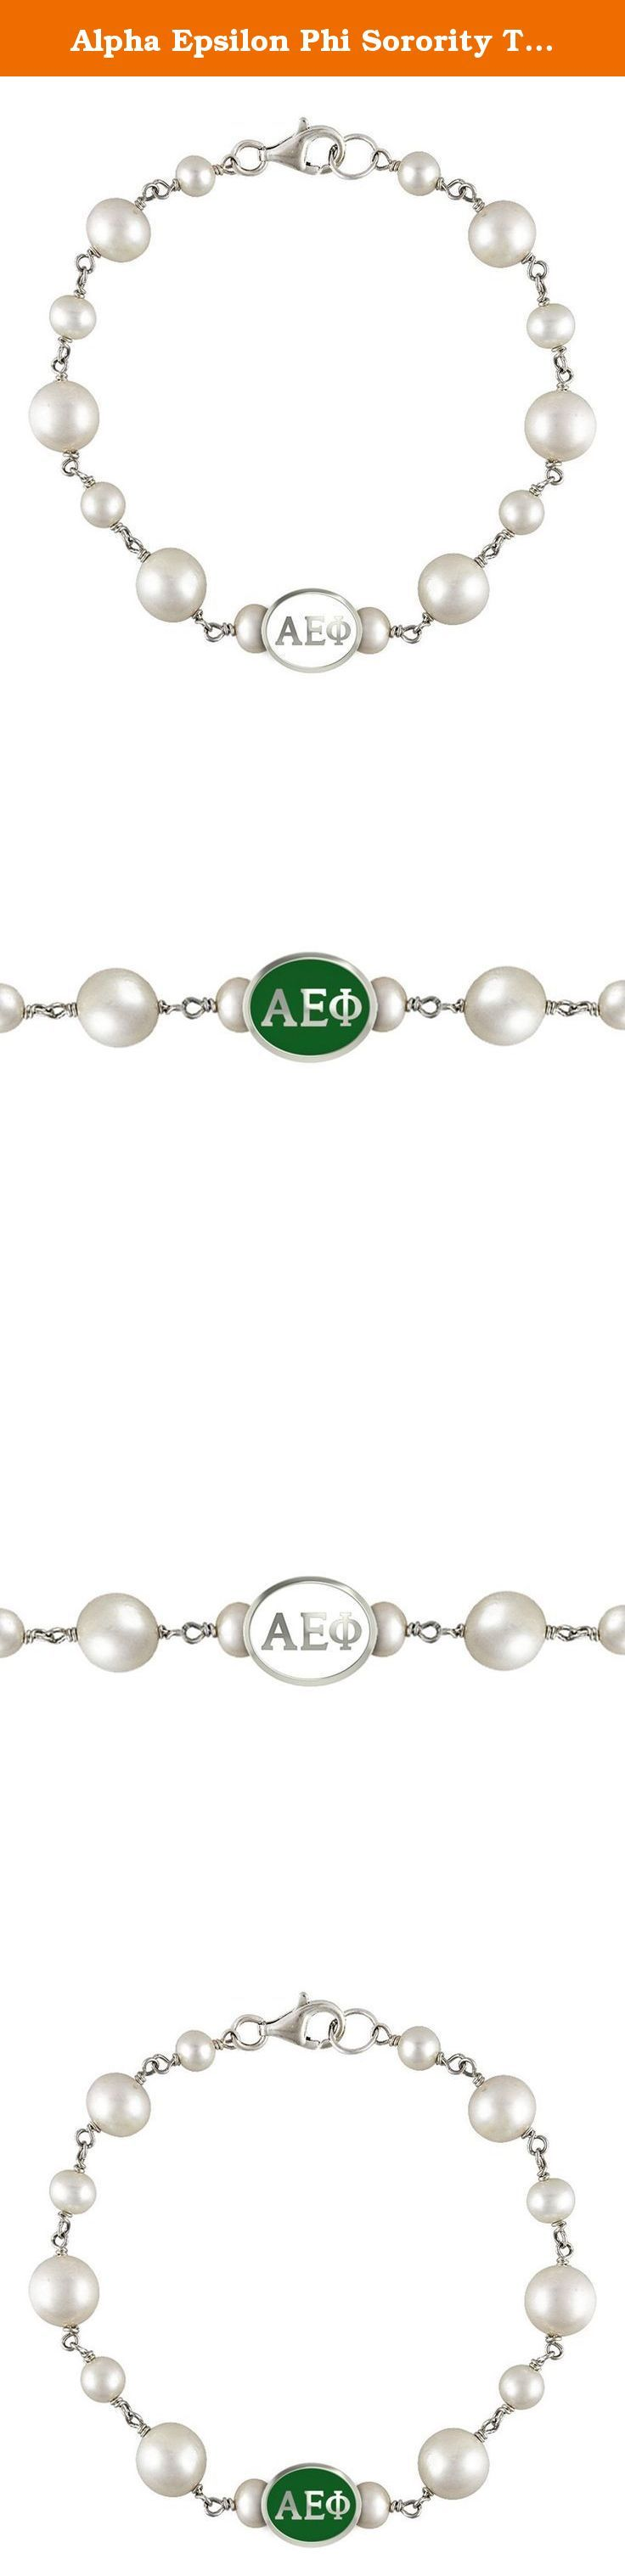 Alpha Epsilon Phi Sorority Tin Cup Pearl Charm Bracelet. Swarovski Pearls and Sterling Silver Beads are combined to create our Alpha Epsilon Phi Sorority Tin Cup Pearl Bracelet. The bead is cast in solid sterling silver and hand finished to achieve maximum detail. The pearls are Swarovski glass pearls with a bright semi-gloss surface. Made in the U.S.A.